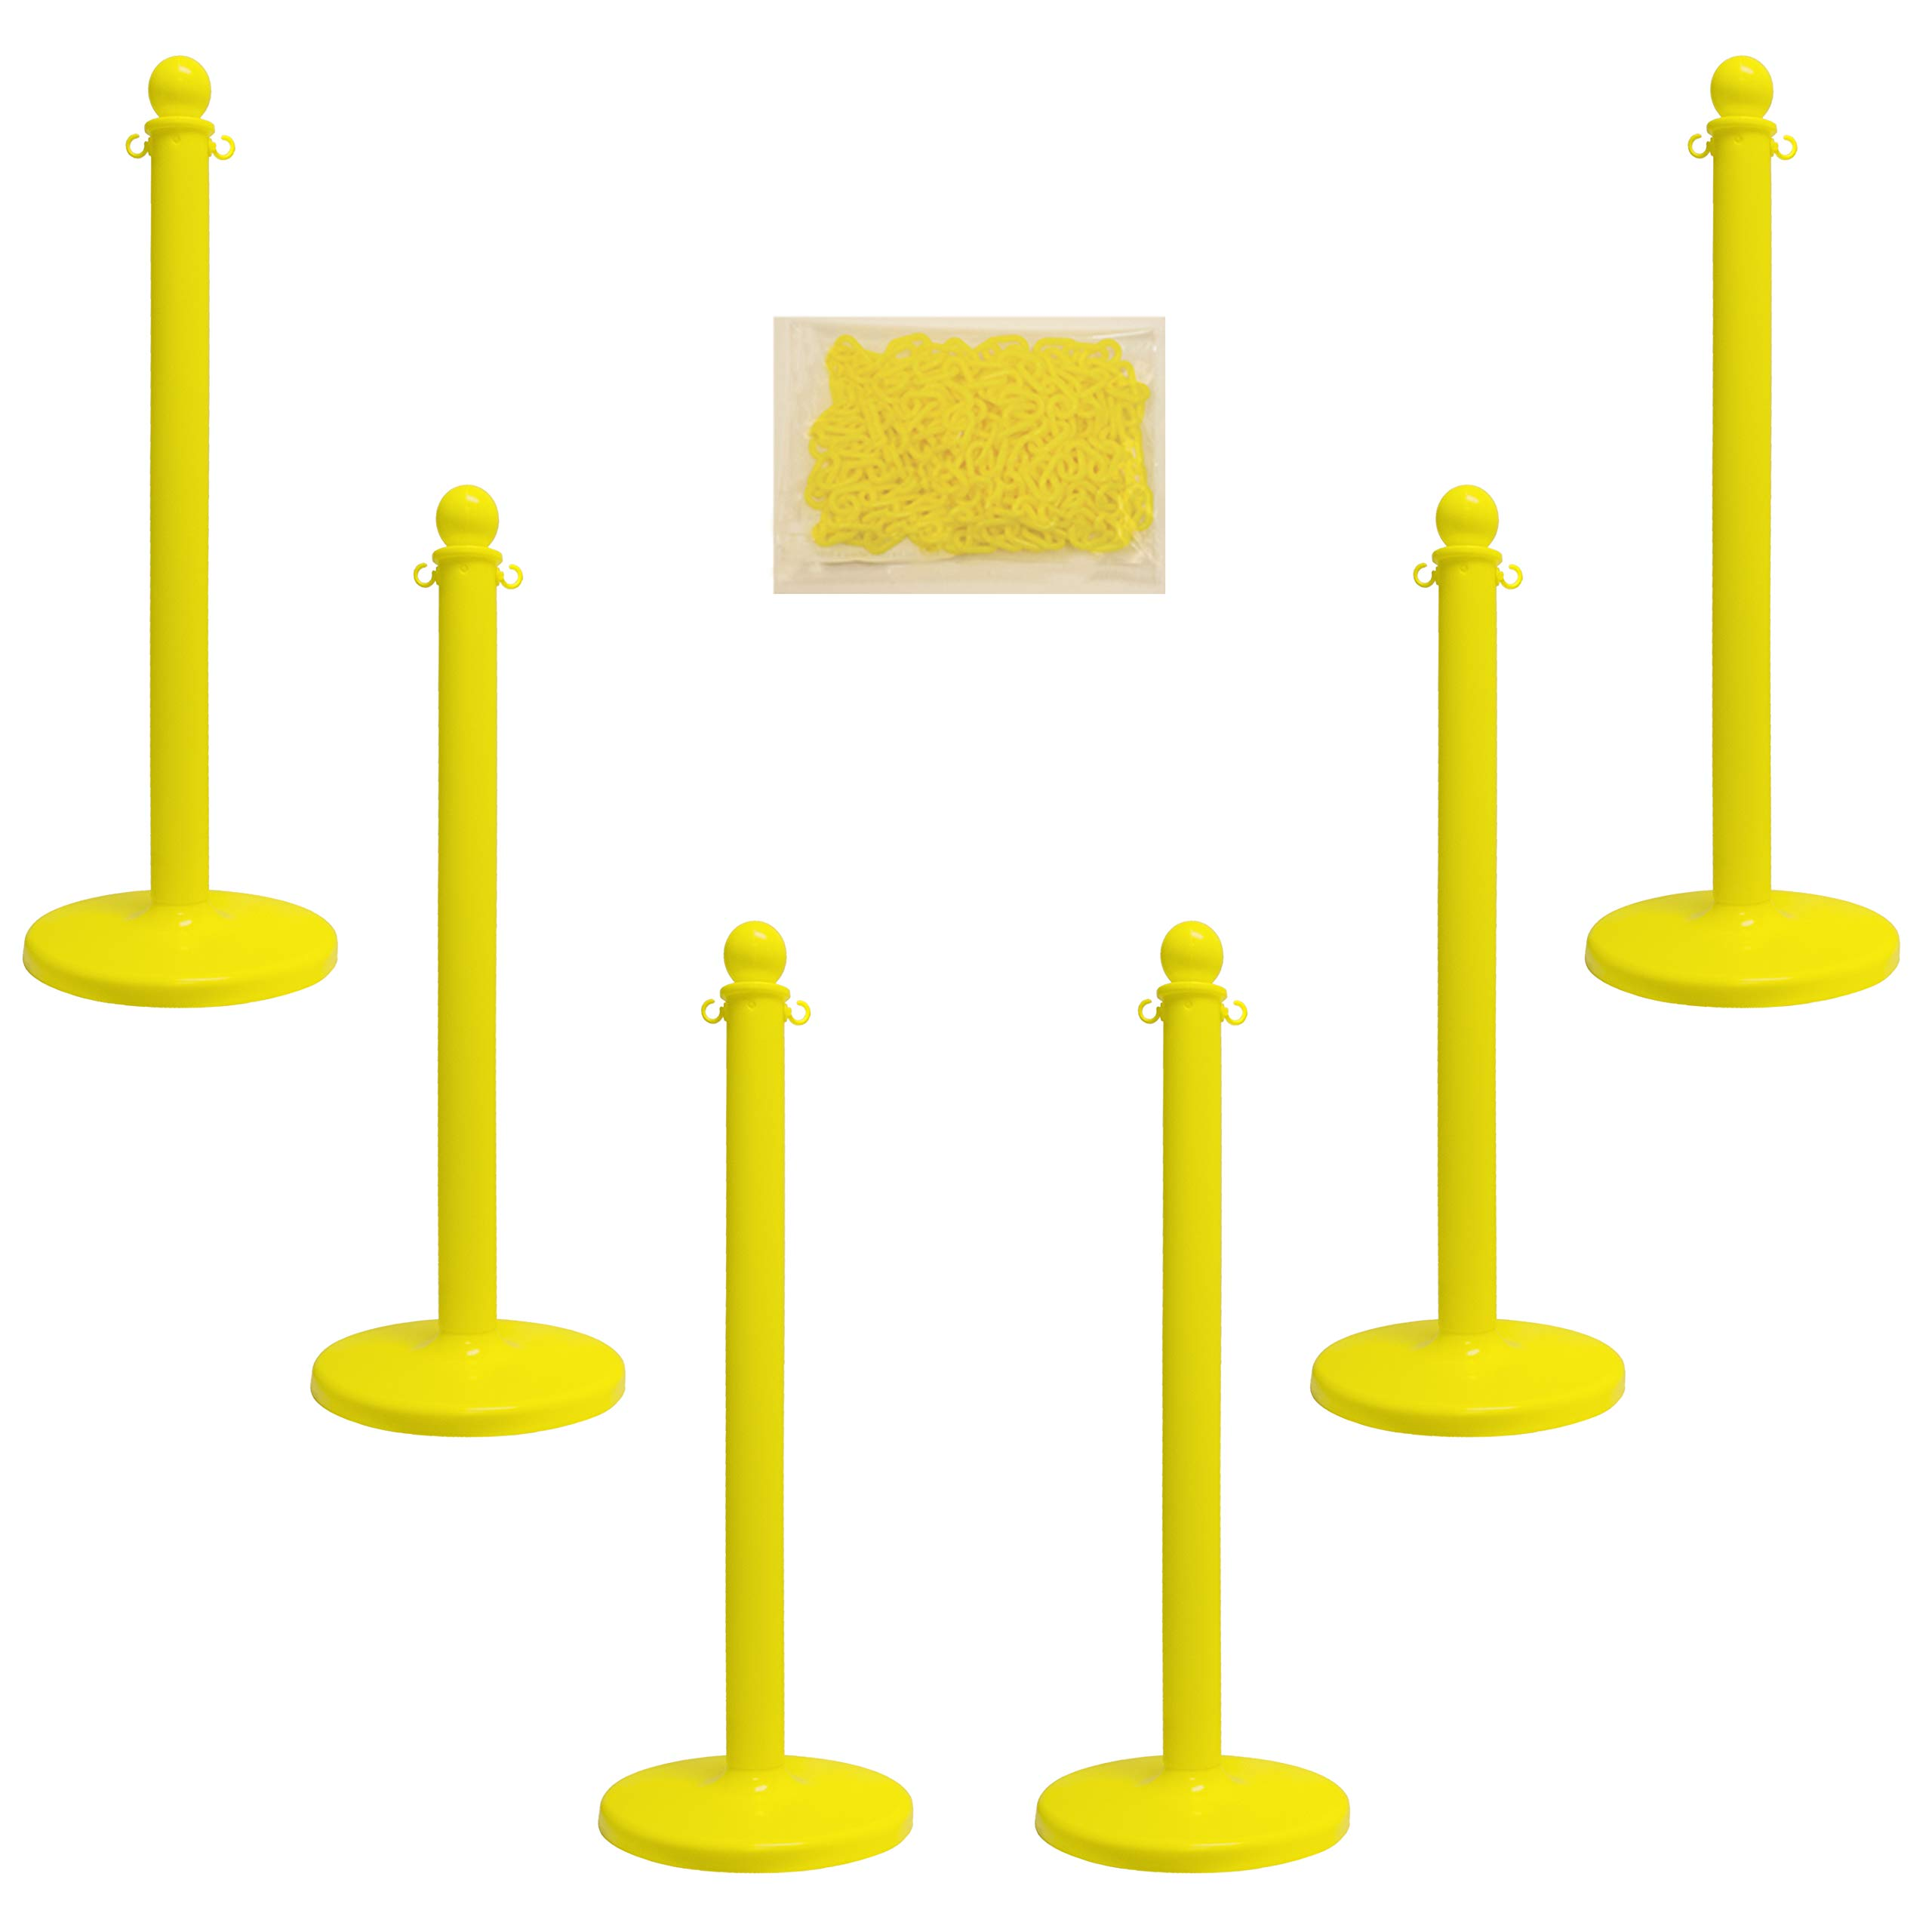 Mr. Chain 71002-6 Yellow Plastic Stanchion Kit with 50' of 2'' link Chain and C-Hooks, Pack of 6